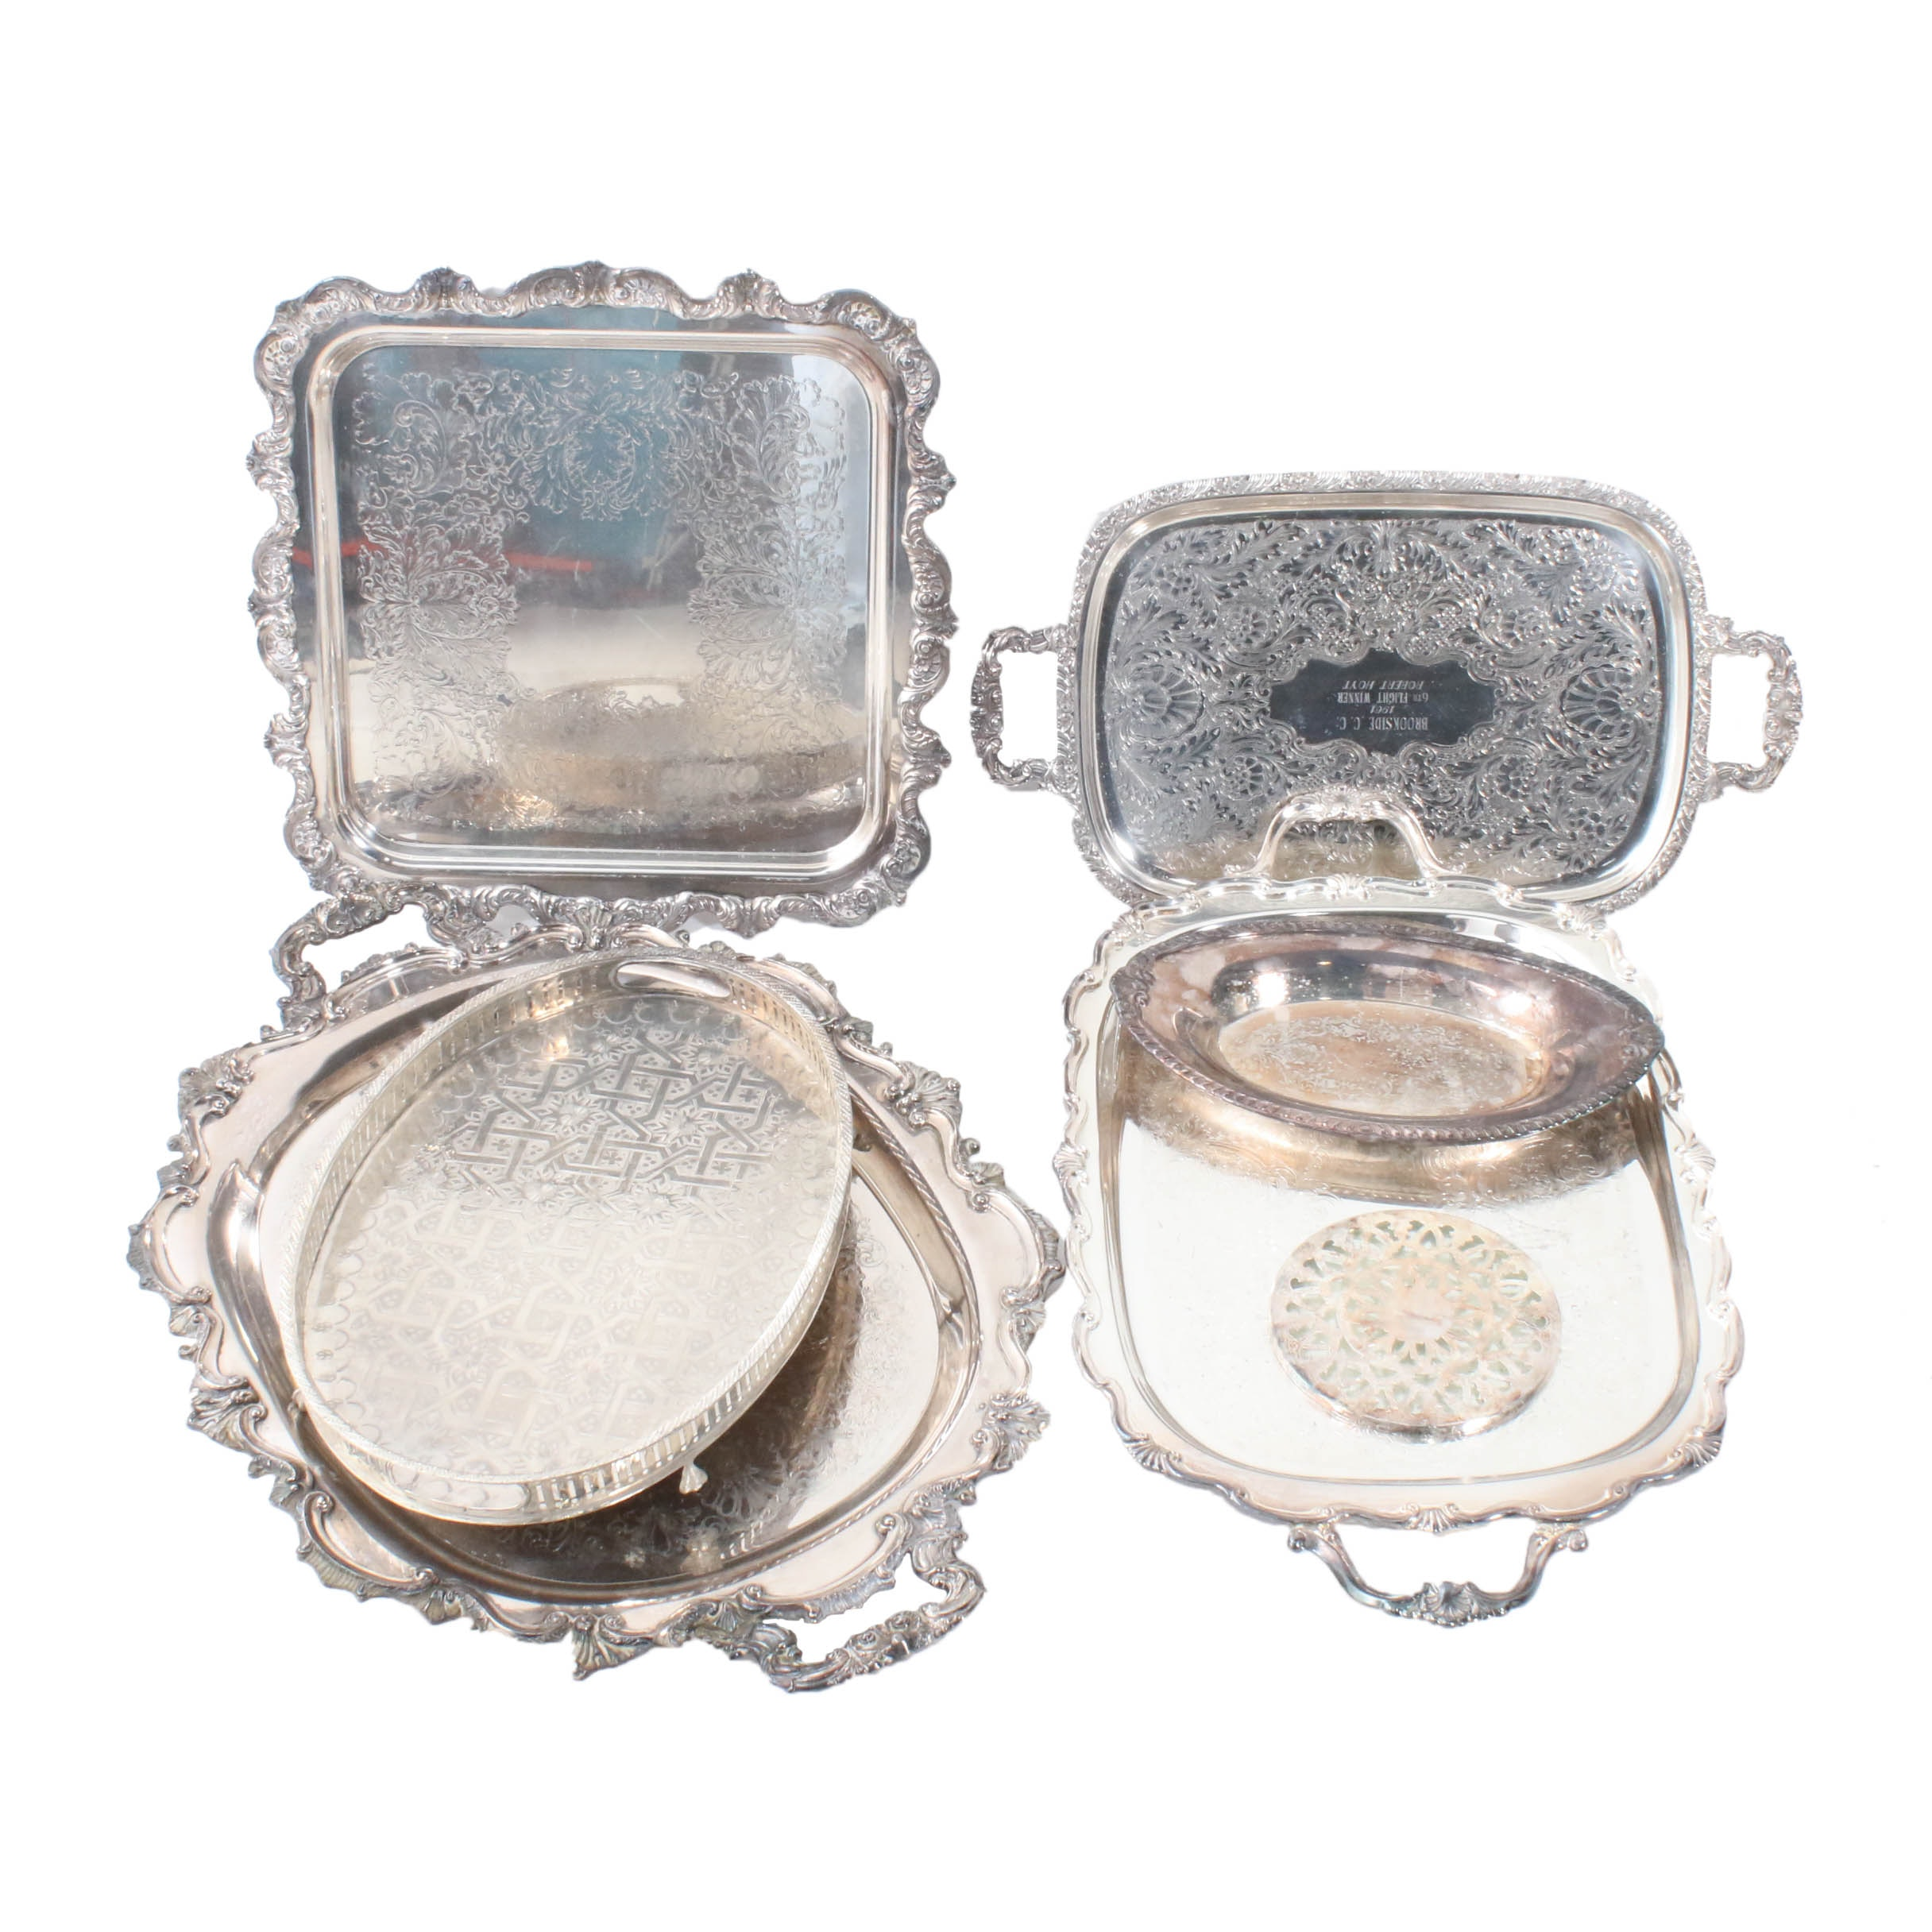 Silver Plate Serving Trays Featuring Henley and Poole